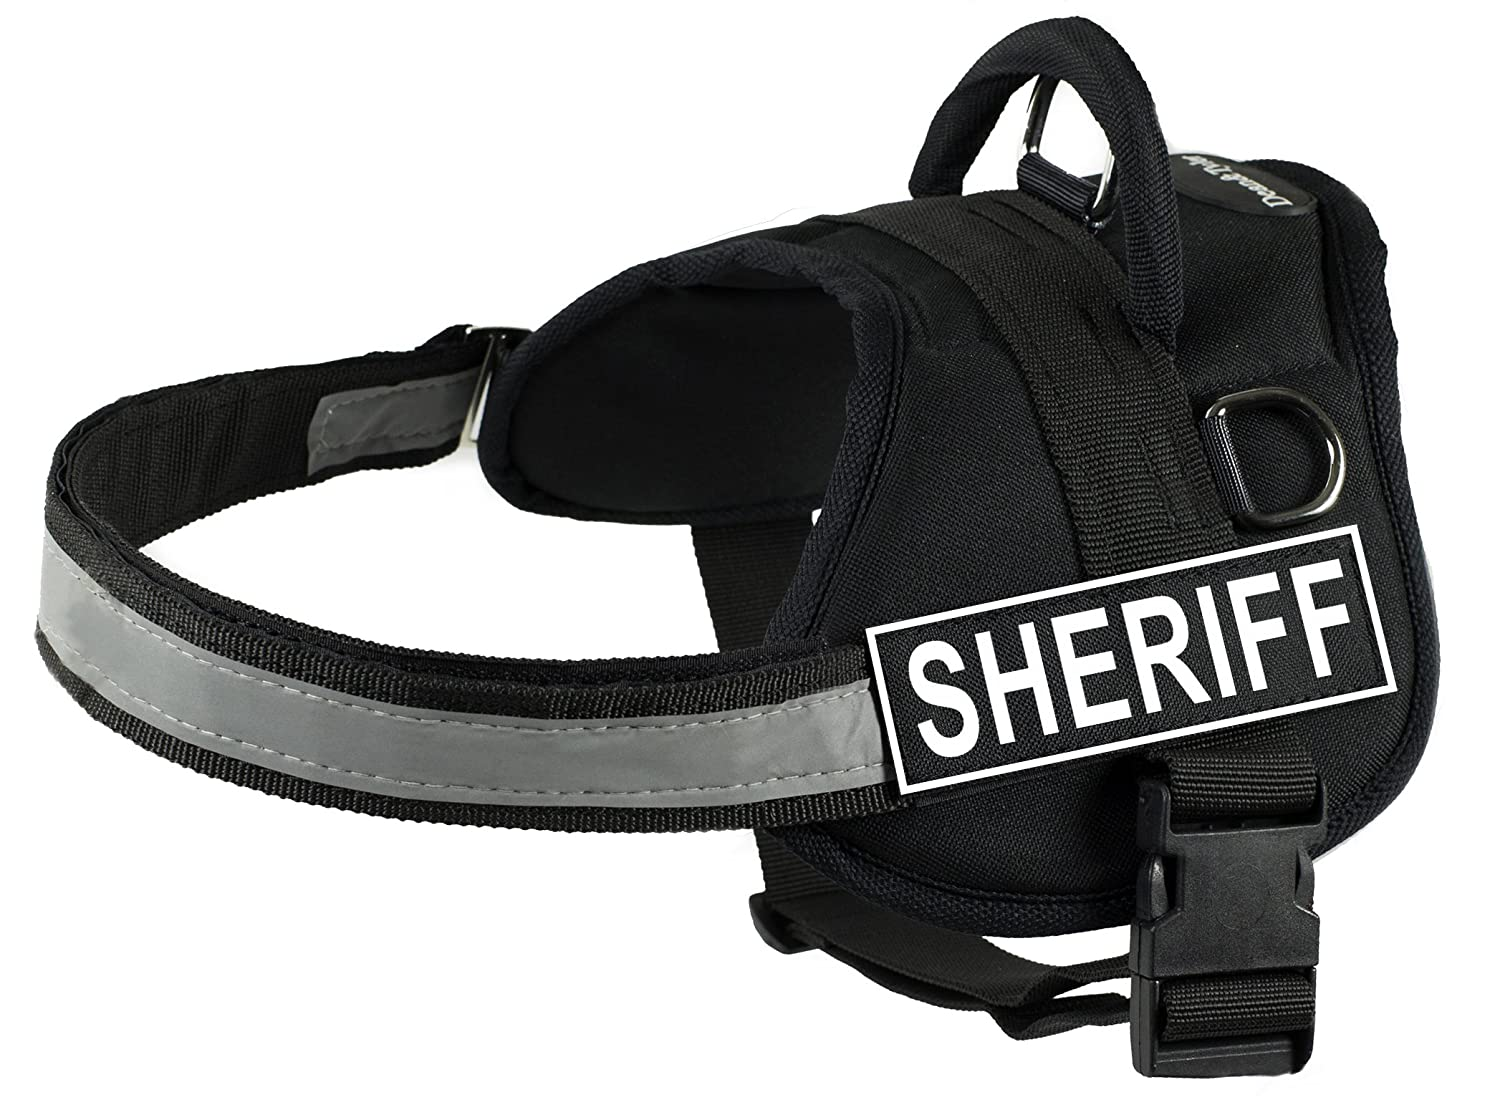 Dean & Tyler Works Harness, Sheriff, X-Small-Fits Girth, 53cm to 66cm, Black White